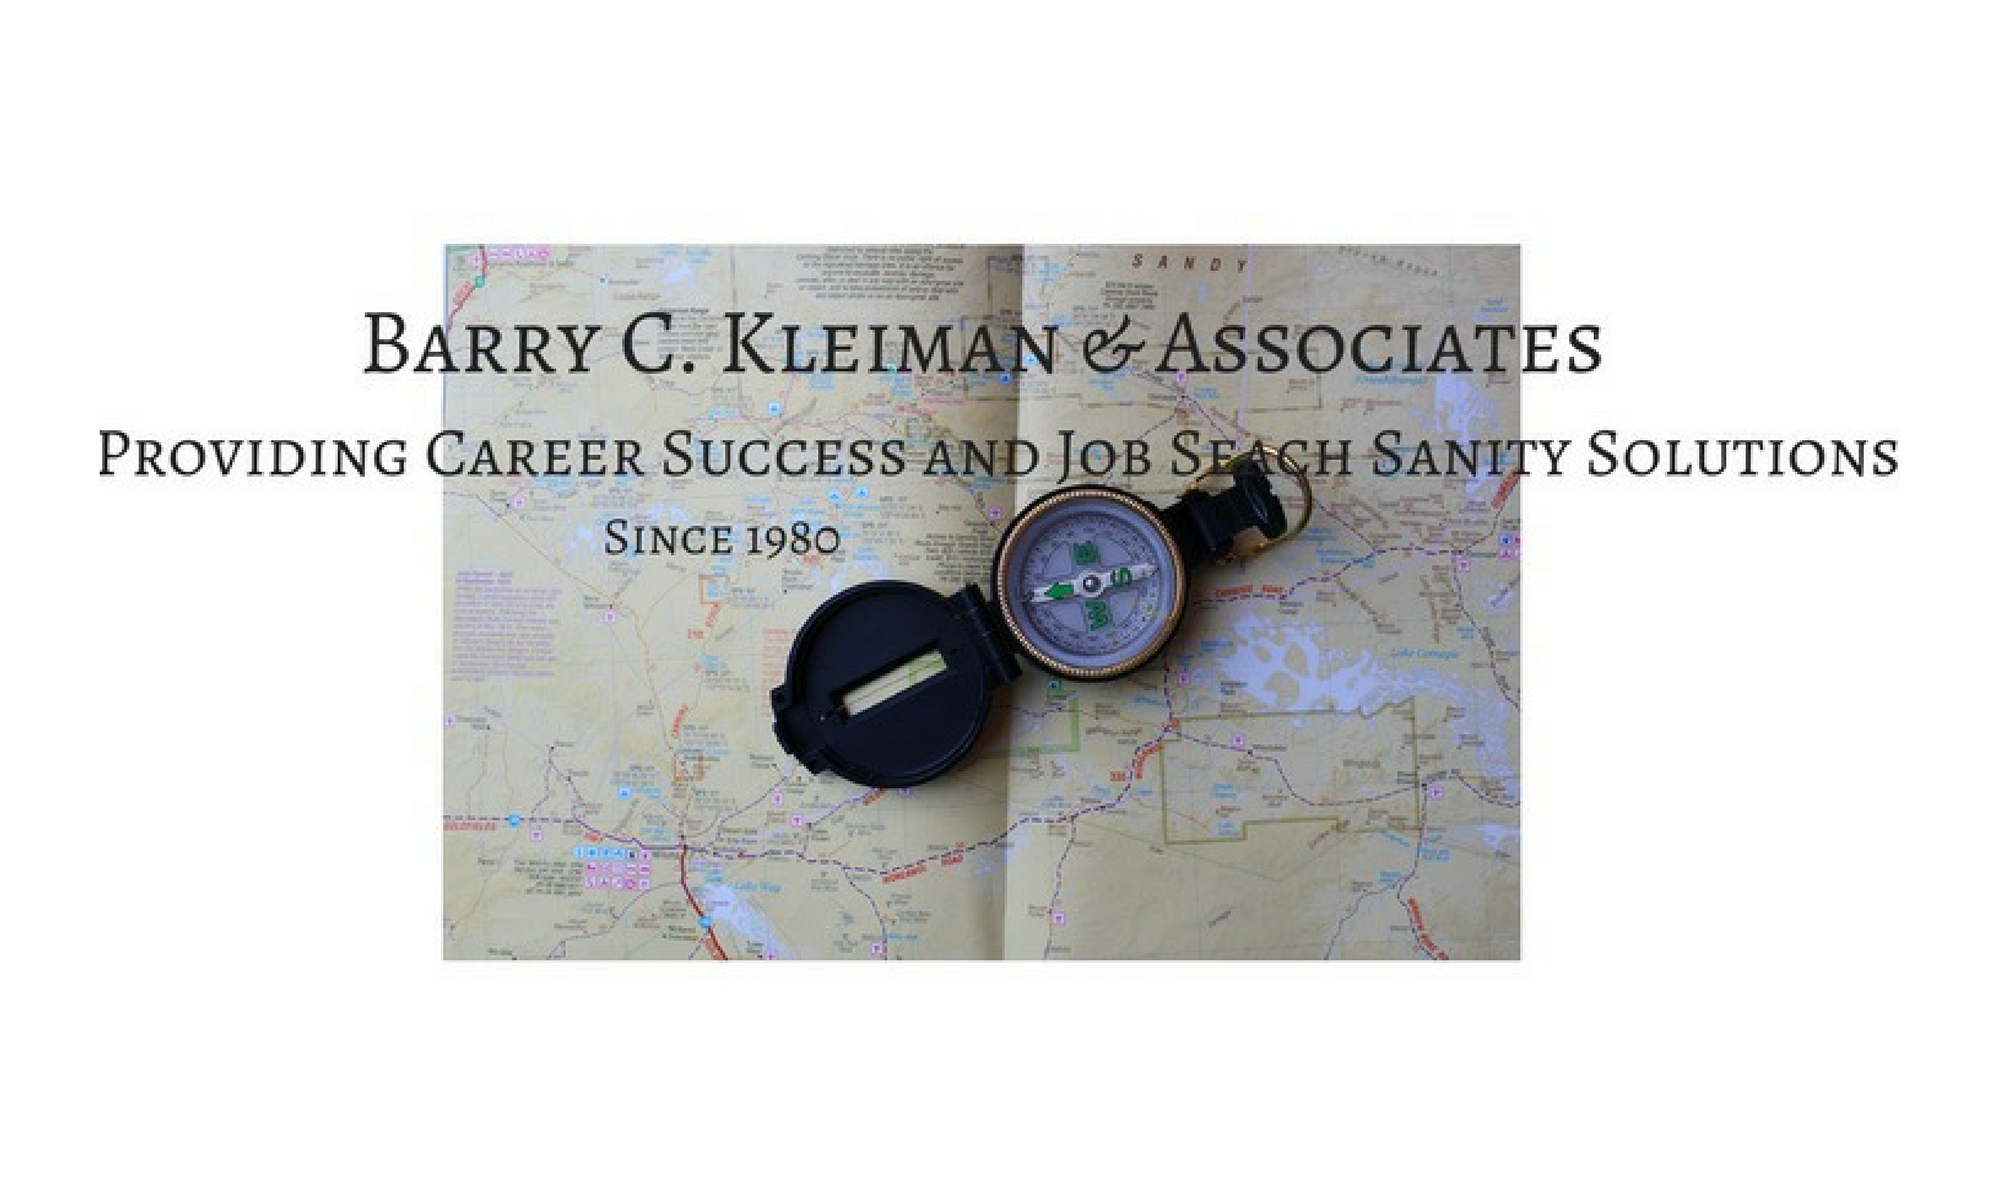 Barry C. Kleiman and Associates